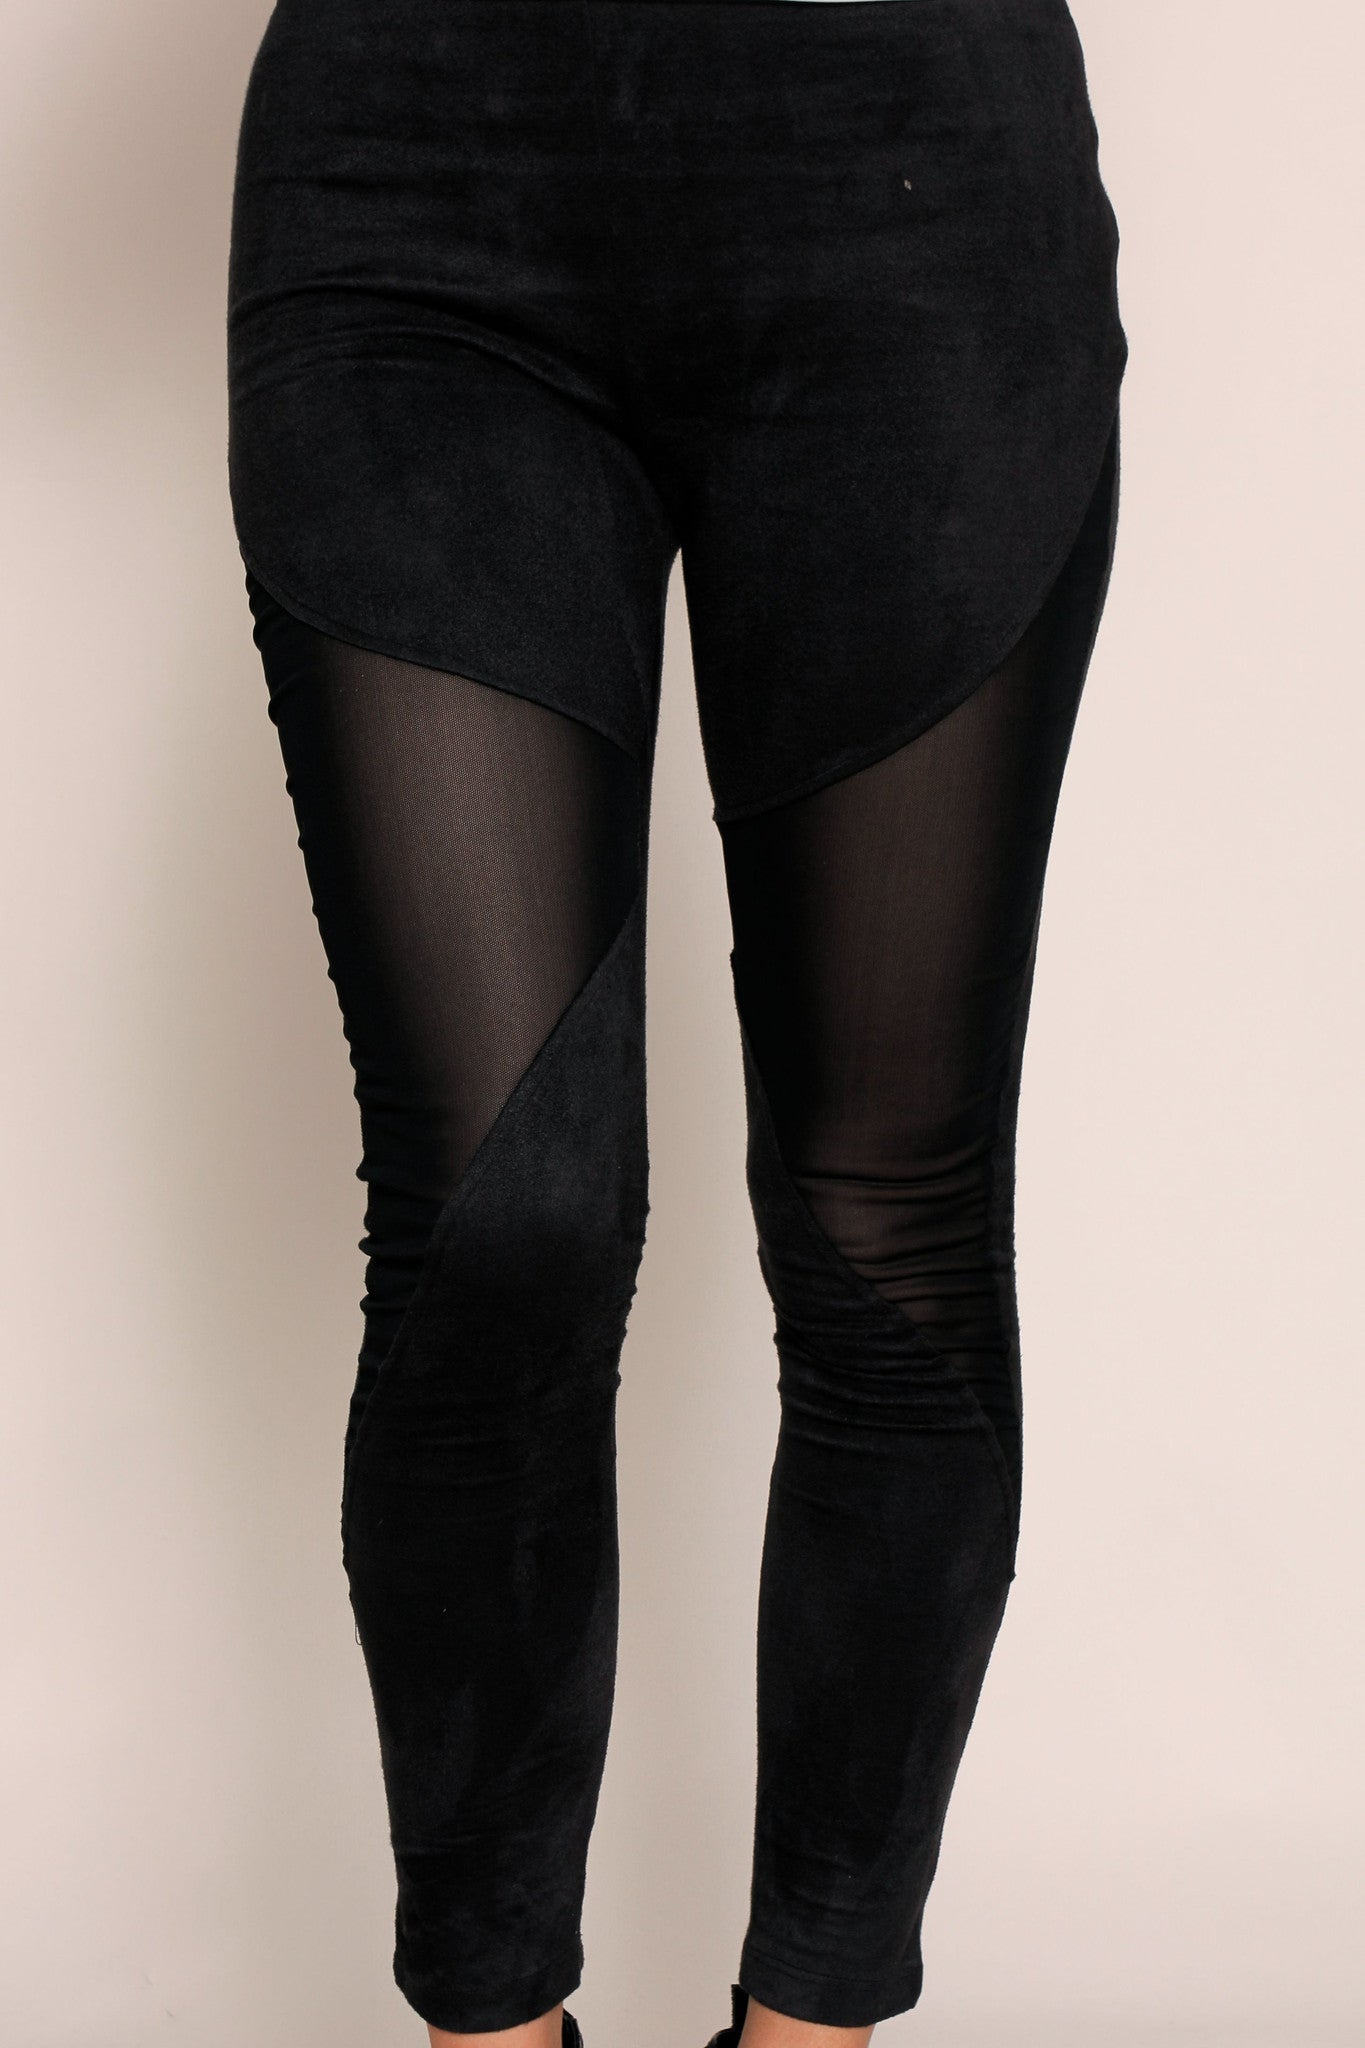 Cut Above Mesh Leggings- Black